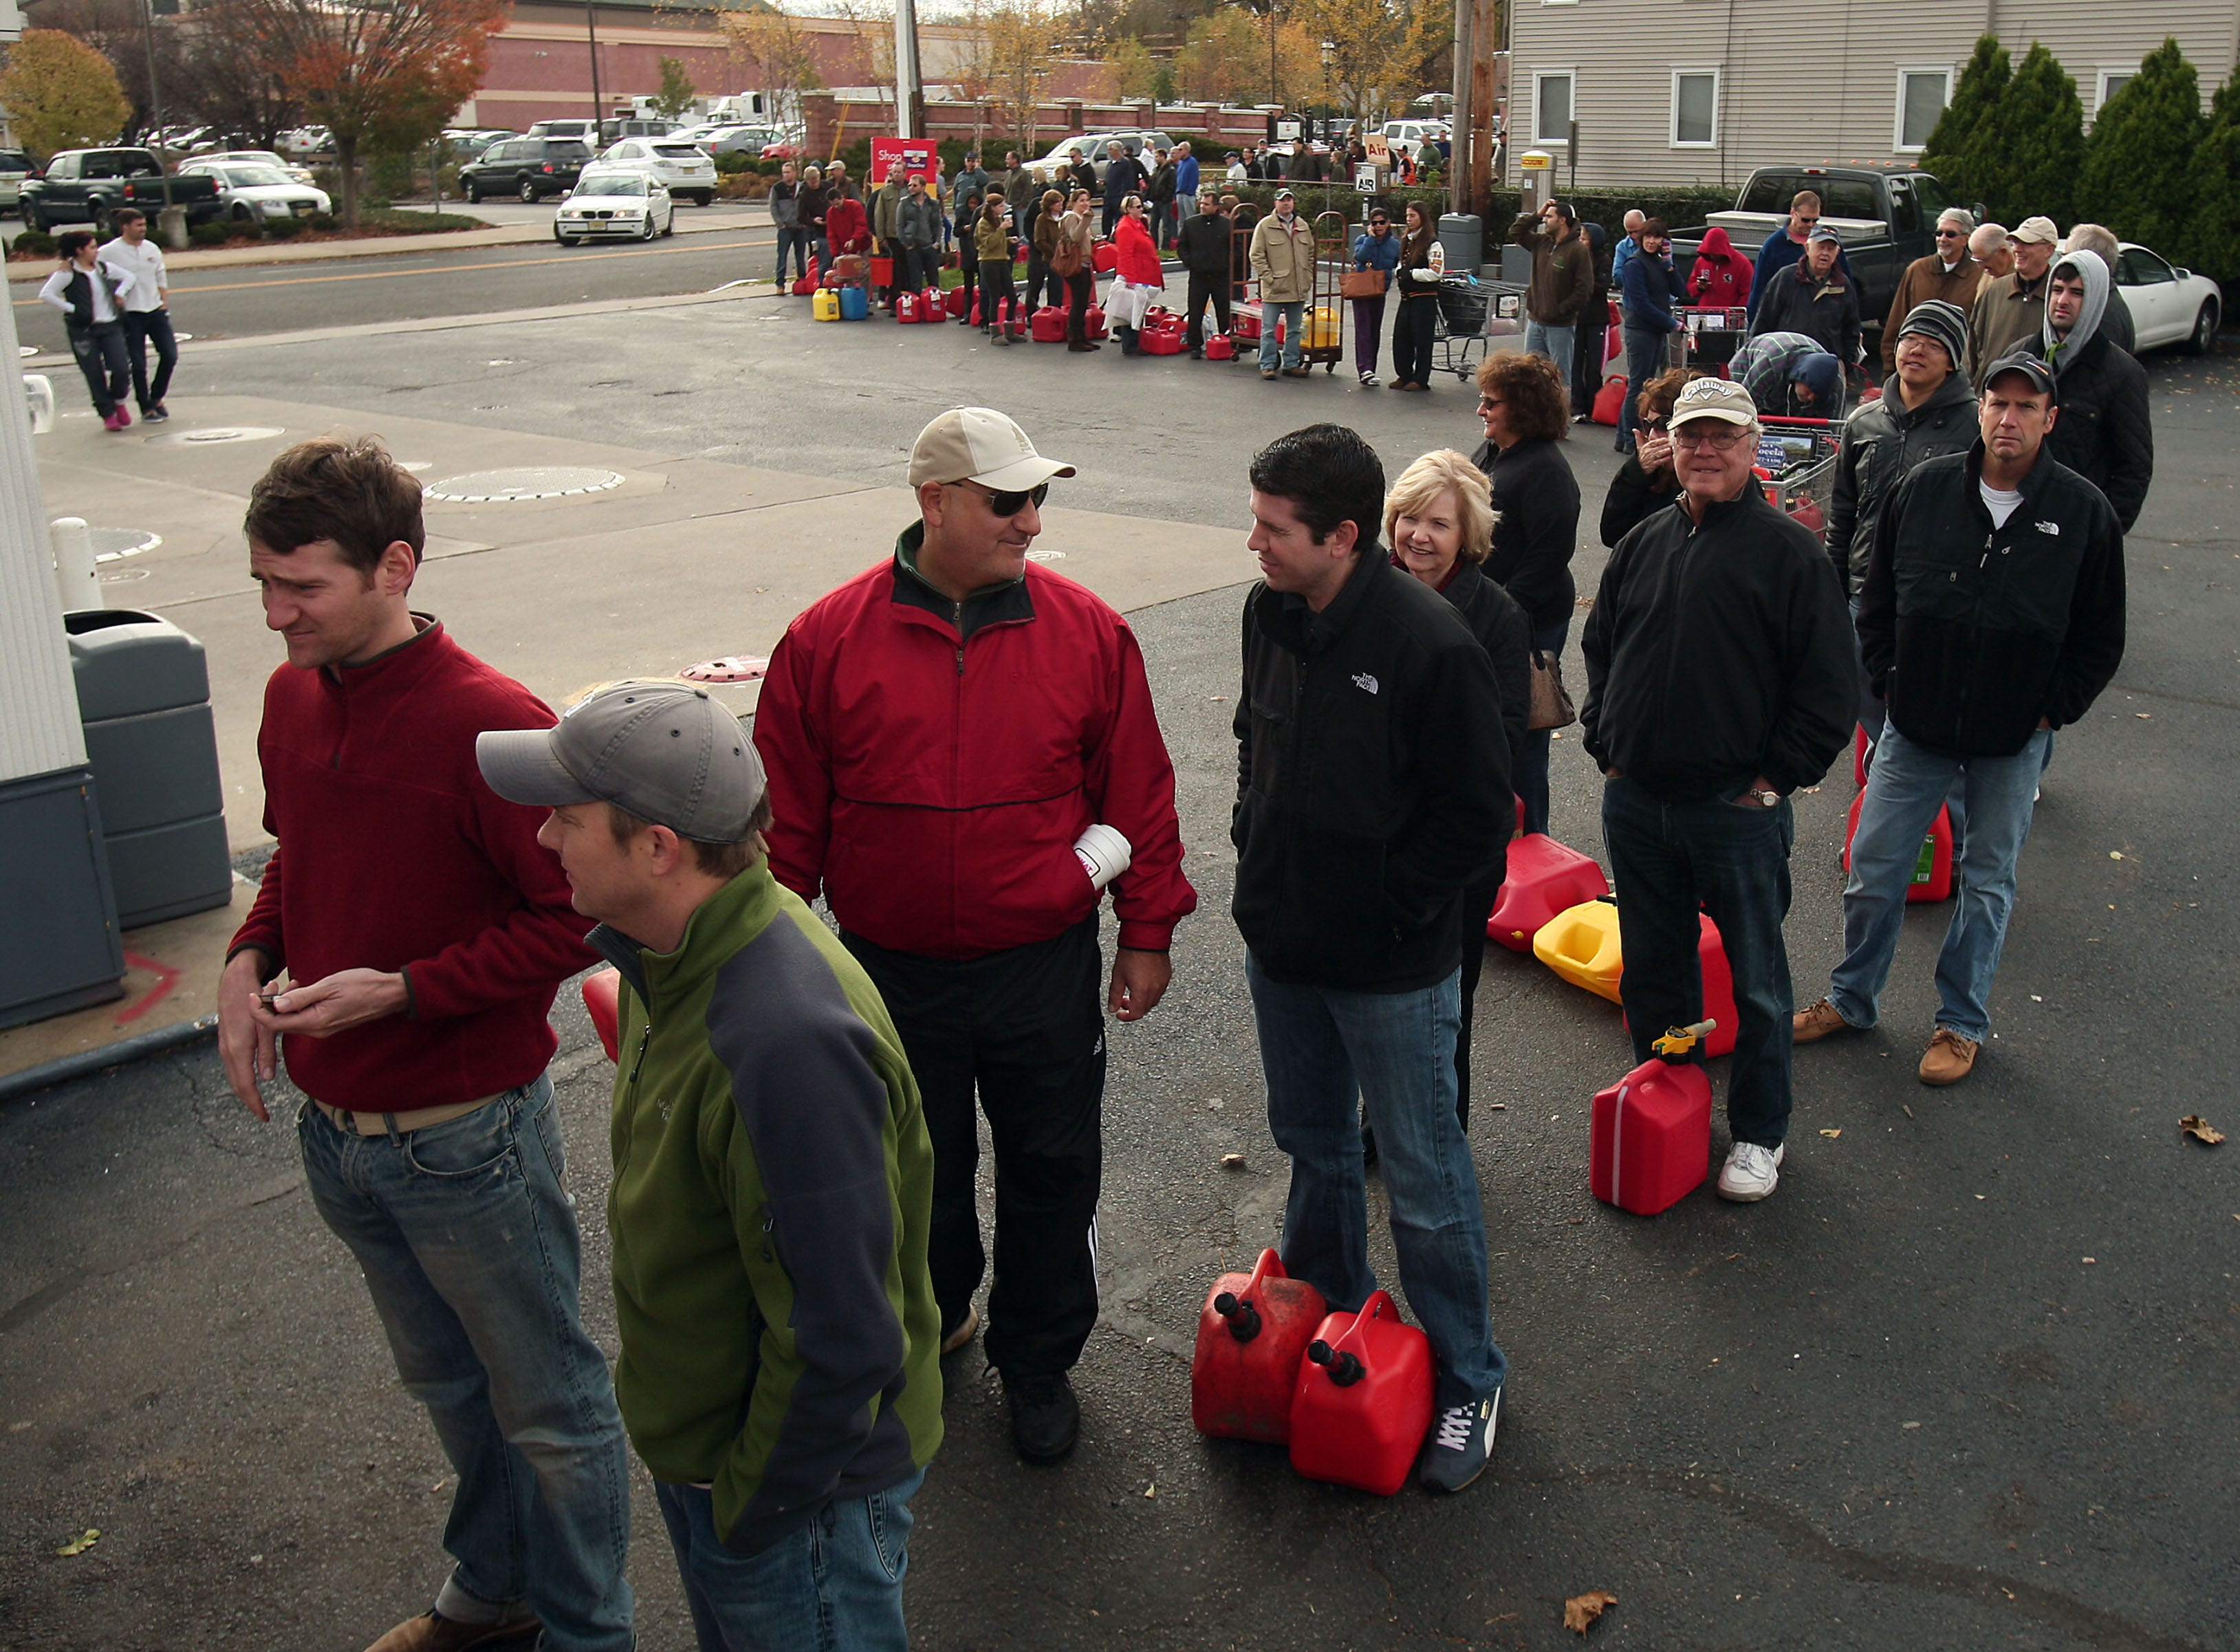 Madison, NJ- November 1, 2012--Residents line up at Madison Shell  to fill up cars and gas cans as locals continue the recovery process after Hurricane Sandy devastated the eastern seaboard.Bob Karp/Staff Photographer/DAILY RECORD